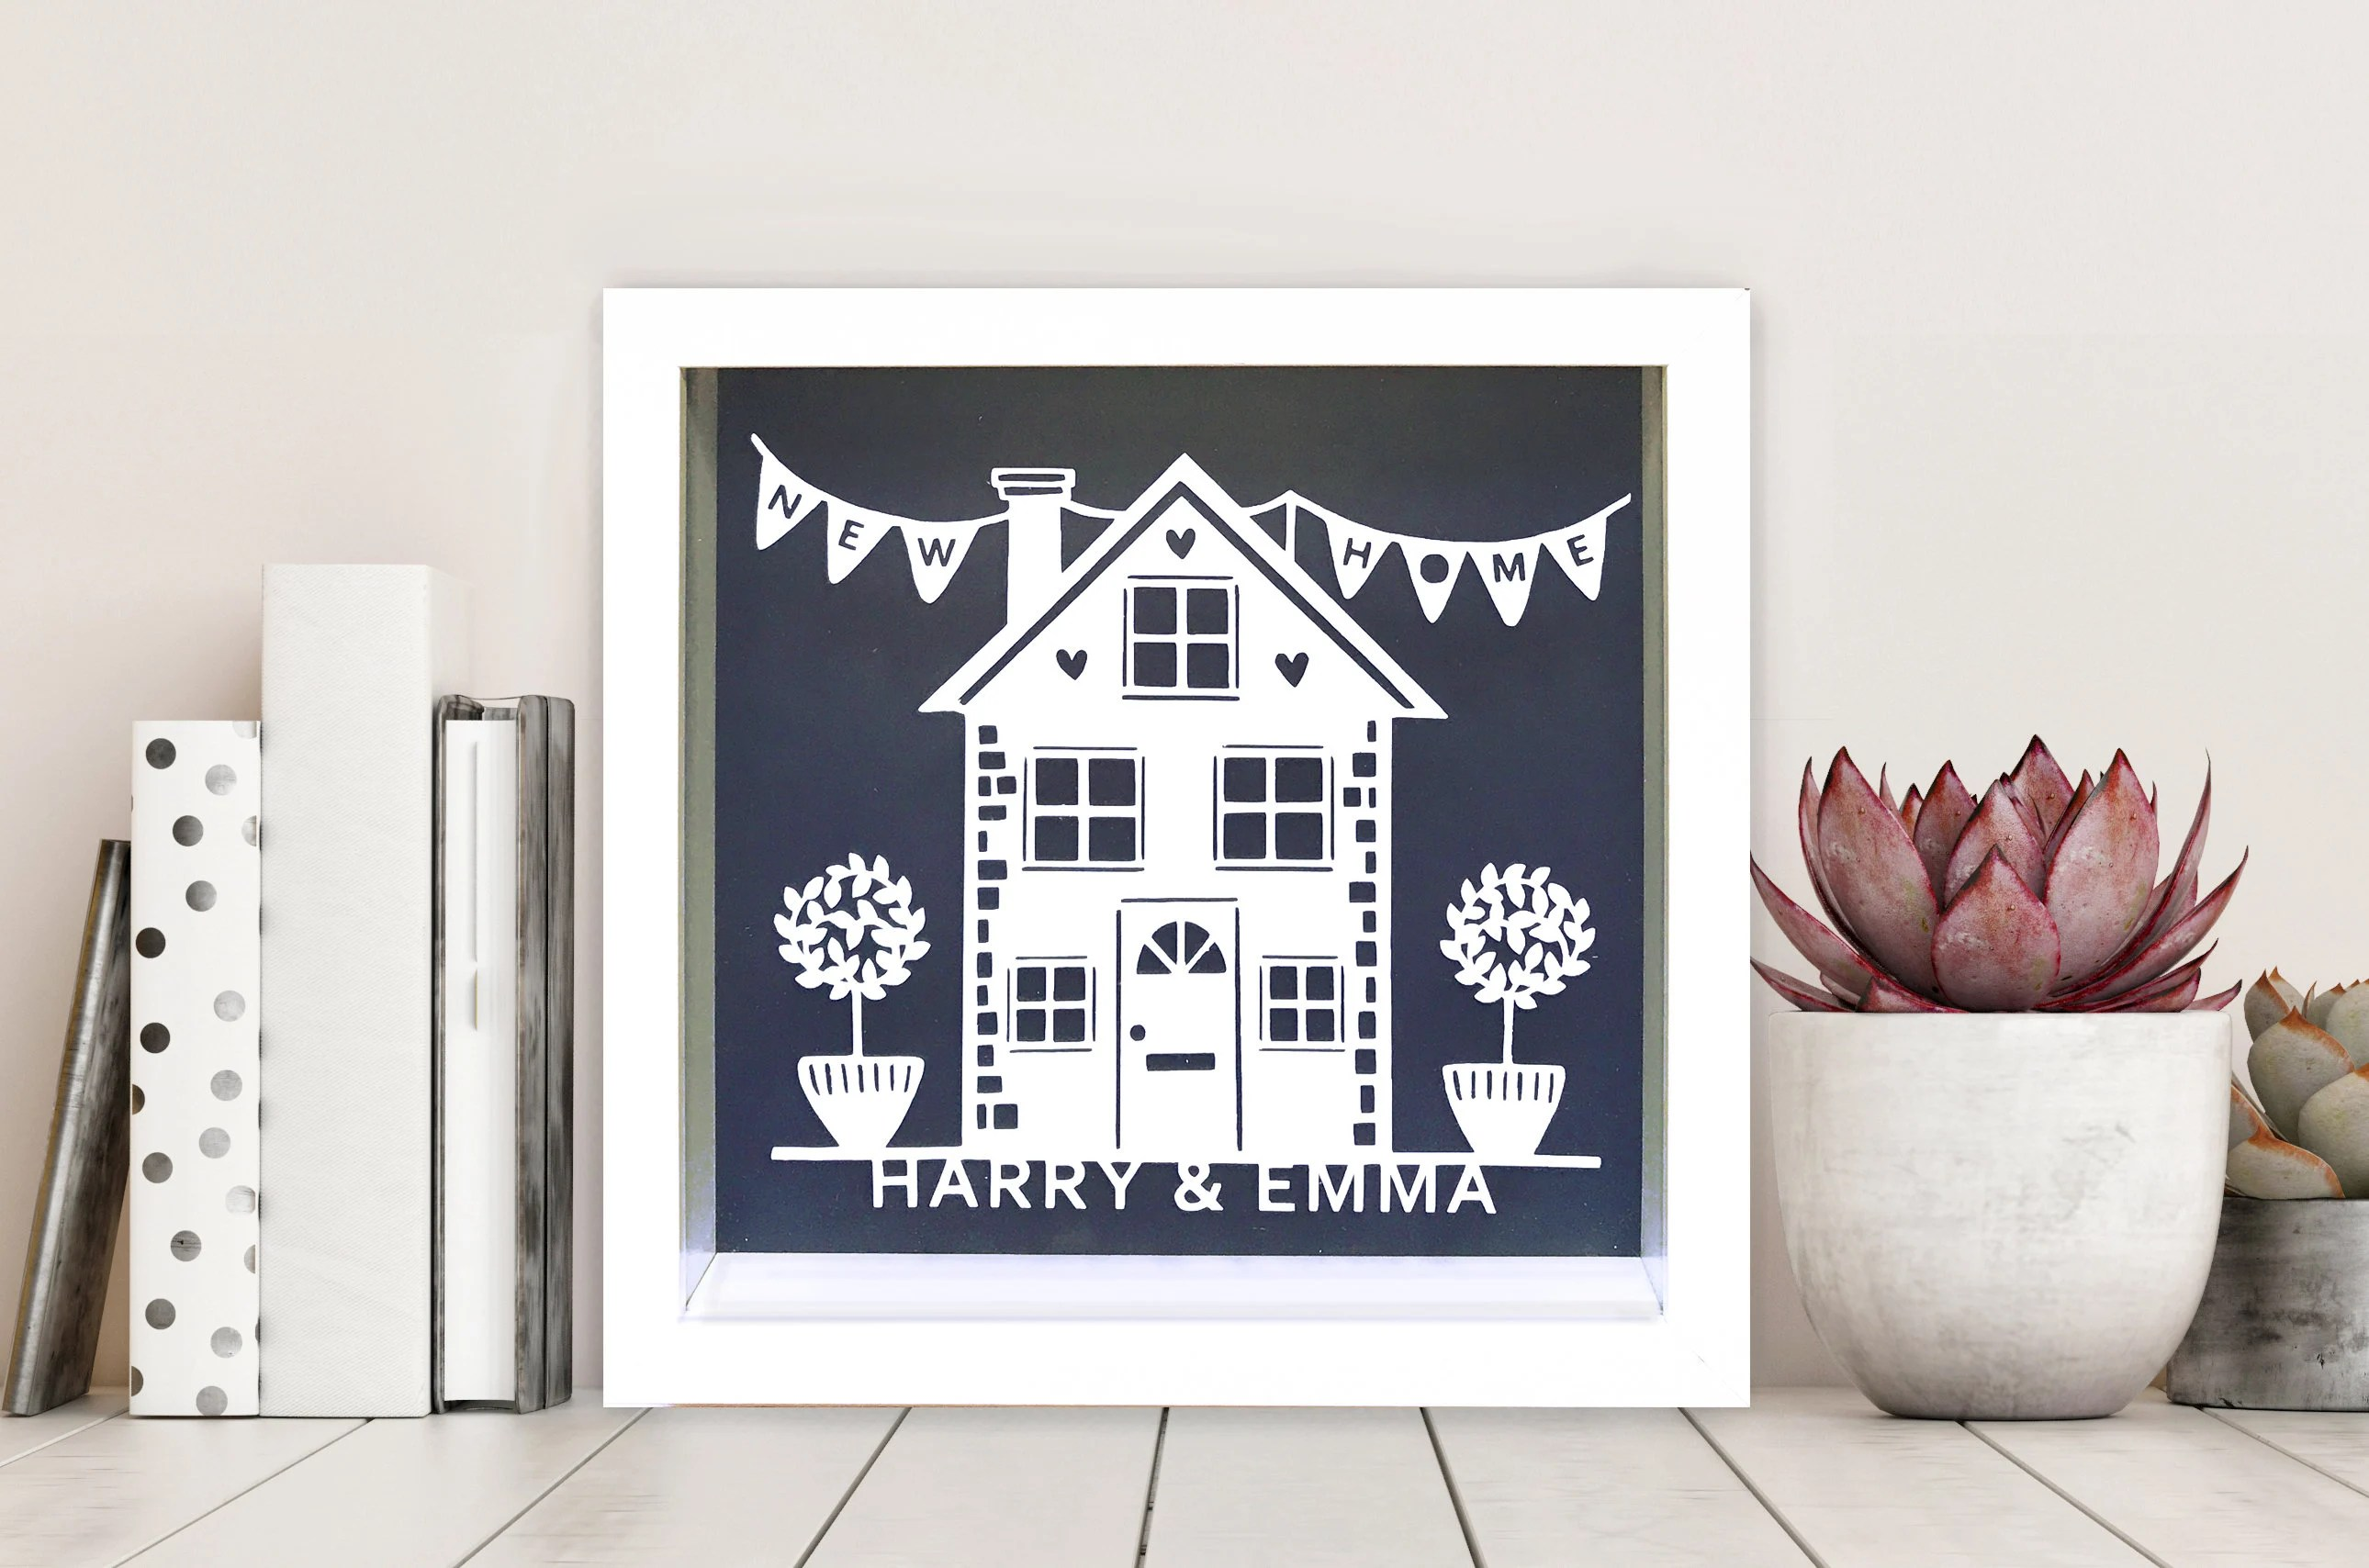 Personalised New Home Gifts Personalised New Home Gift Paper Cut Frame First Home Housewarming Gift Gift For Couples Home Sweet Home Home Decor Custom Made Gift